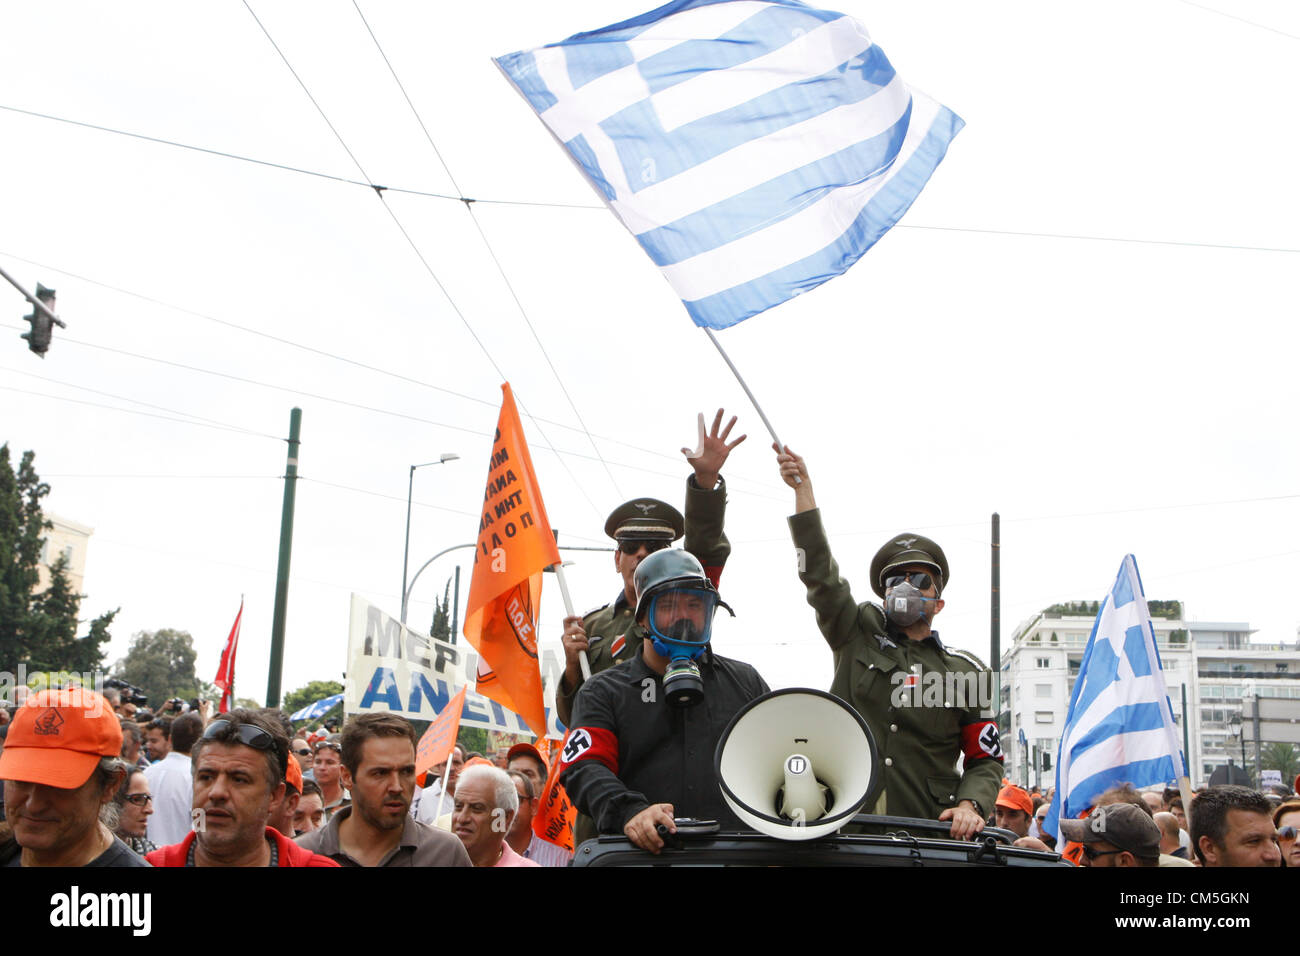 Oct. 9, 2012 - Athens, Greece - Two men dressed as German World War II soldiers with Nazi swastika armbands sit - Stock Image